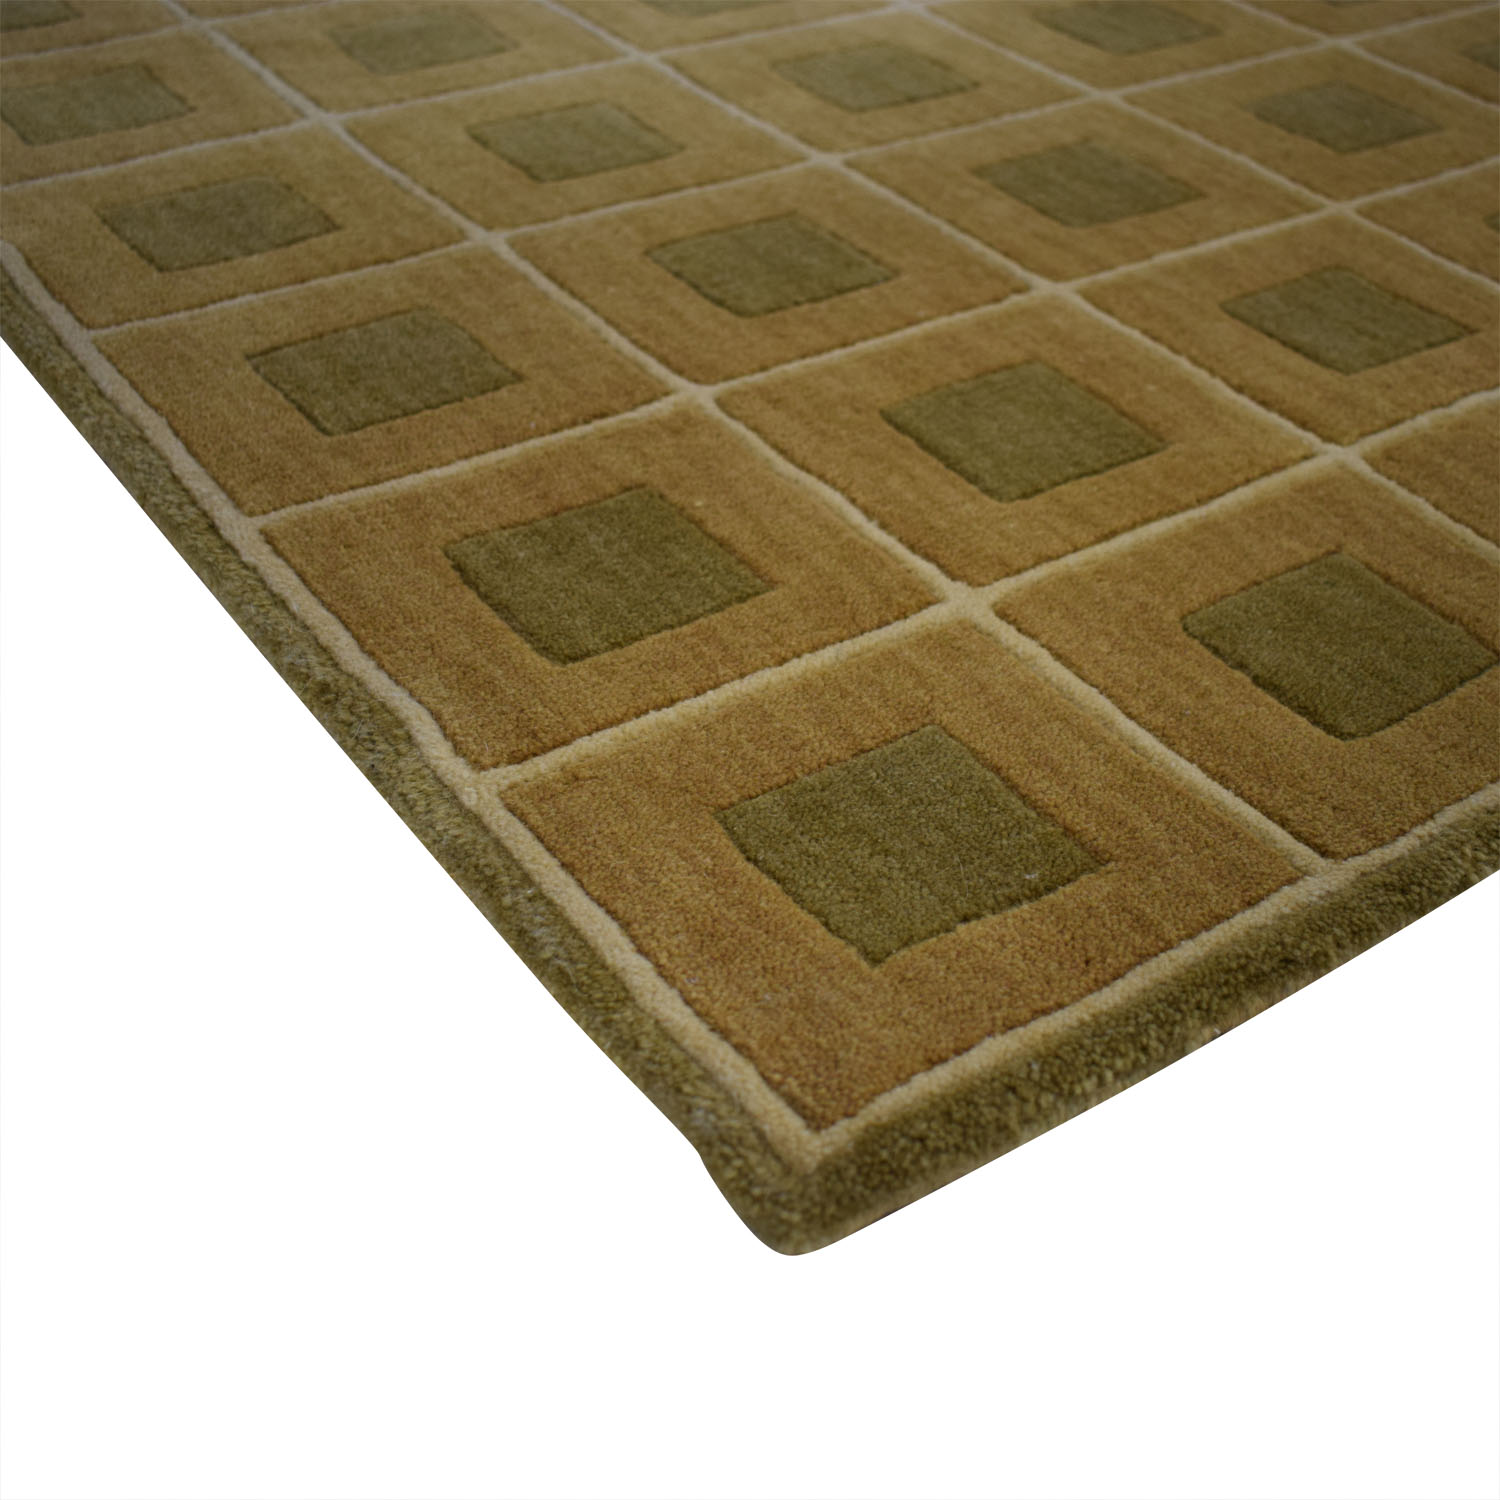 ABC Carpet & Home ABC Carpet & Home Runner Rug nj